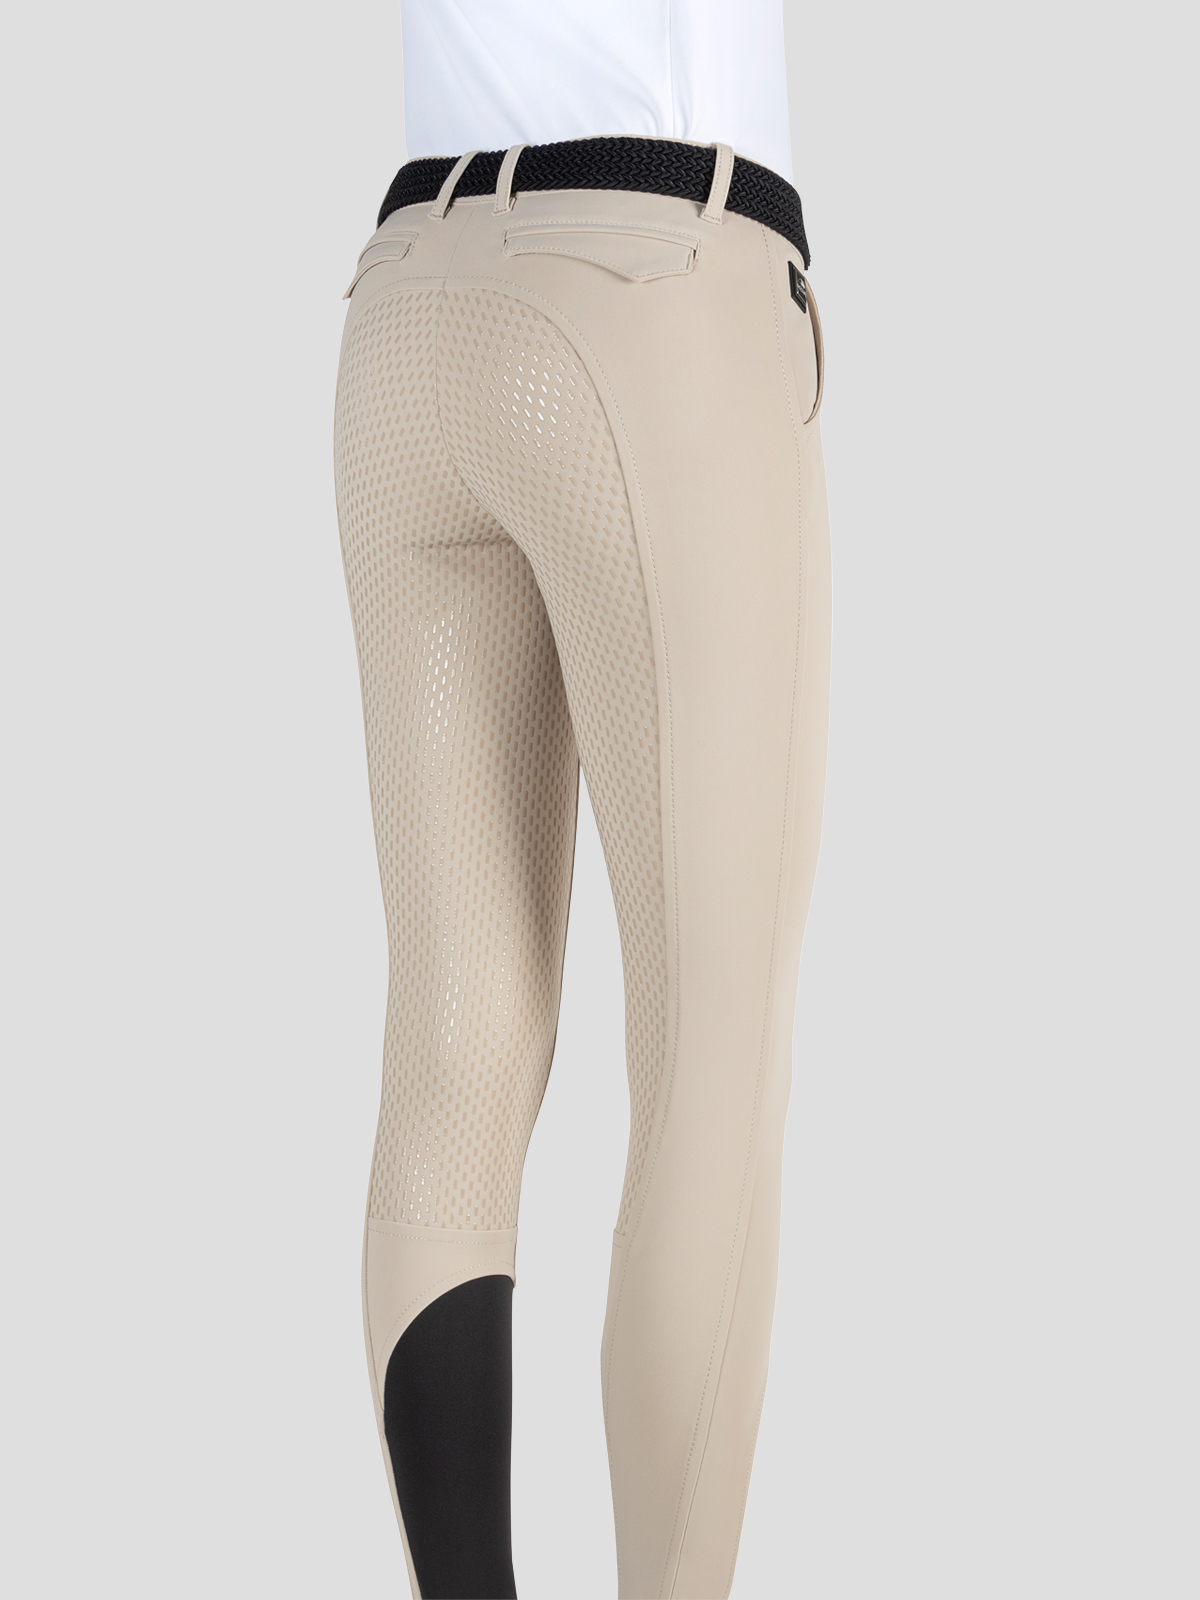 JULIK WOMEN'S FULL GRIP RIDING BREECHES IN B-MOVE FABRIC 5